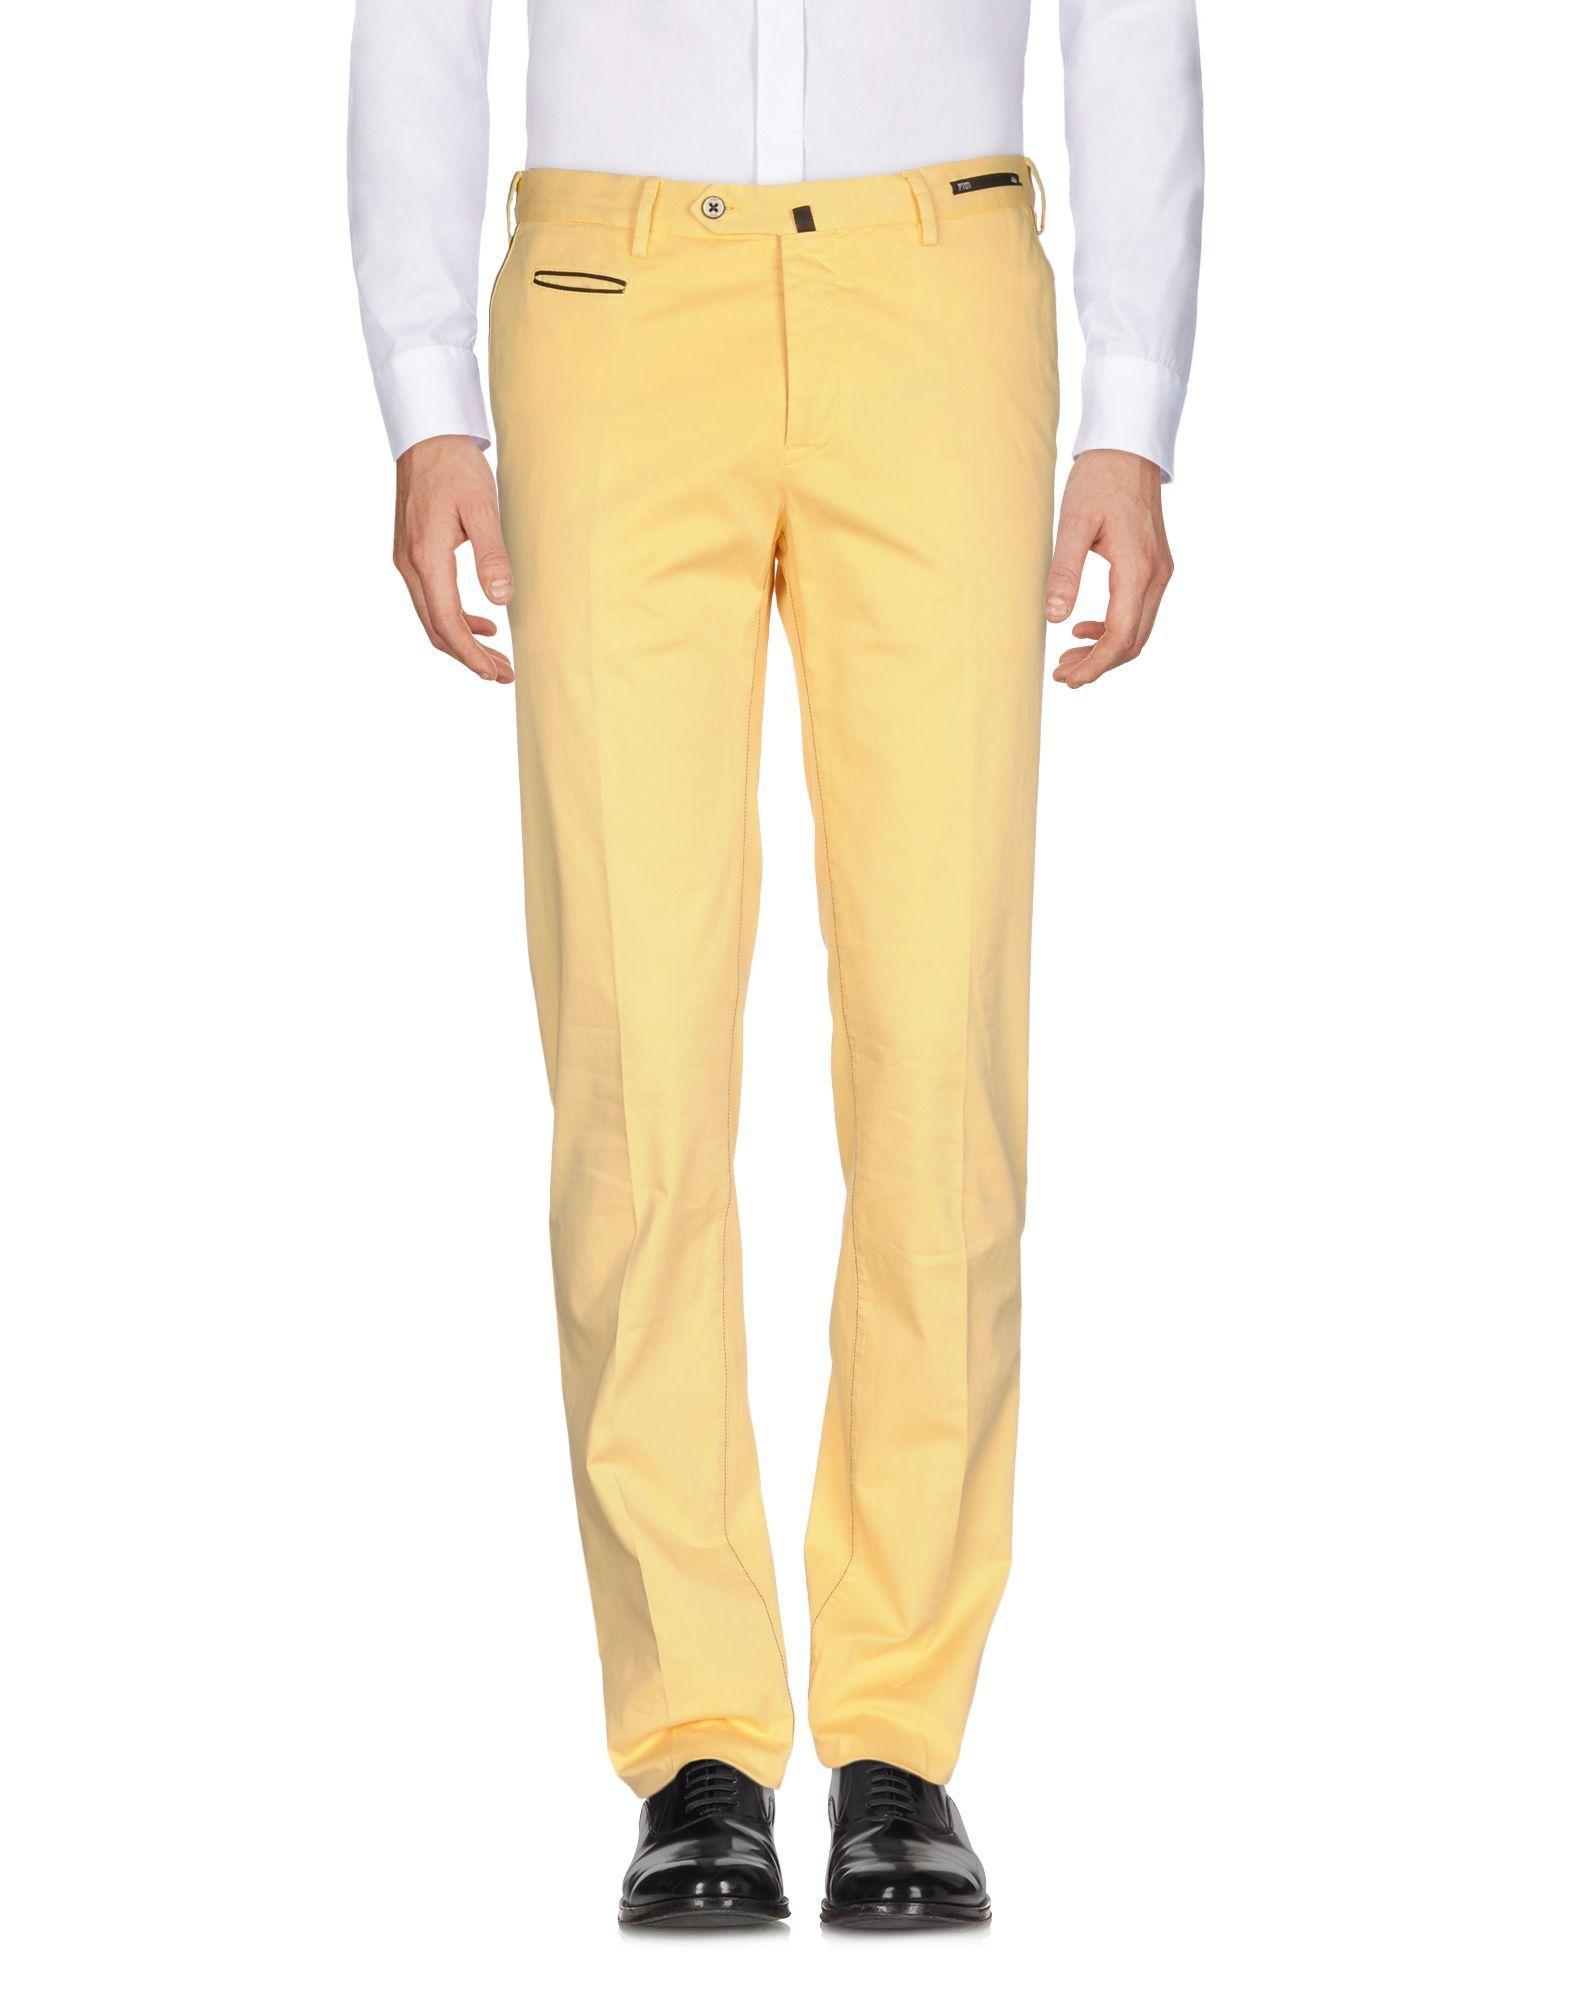 Discount Authentic TROUSERS - Casual trousers PT01 Professional Cheap Online kIIkgaNVu